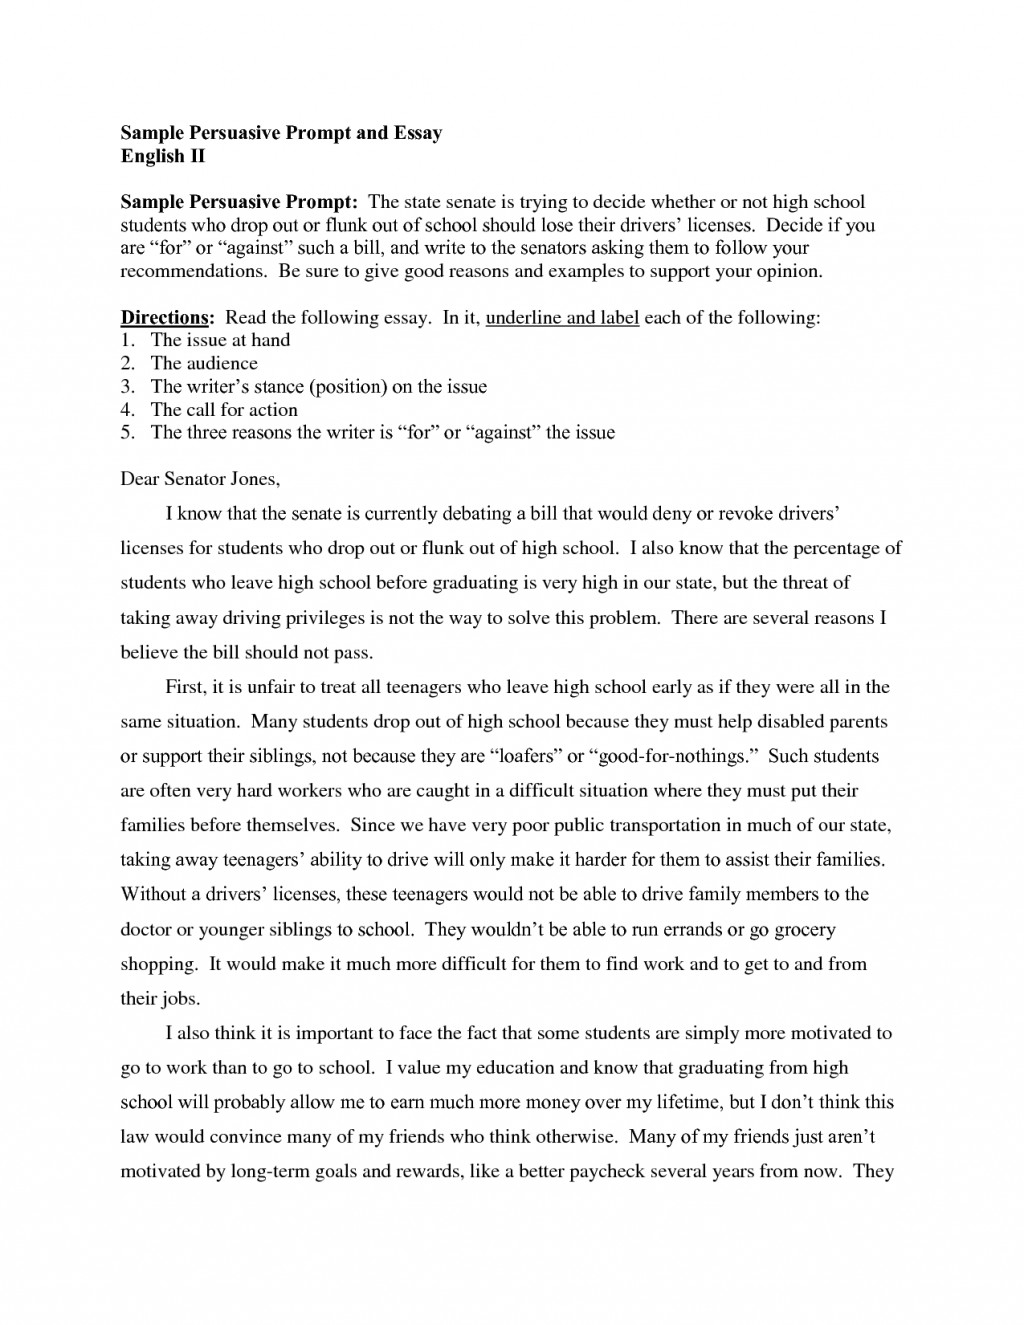 008 Persuasive Essay Topics For High School Sample Ideas Highschool Students Good Prompt Funny Easy Fun List Of Seniors Writing English Free Research Paper About Stunning Education Large